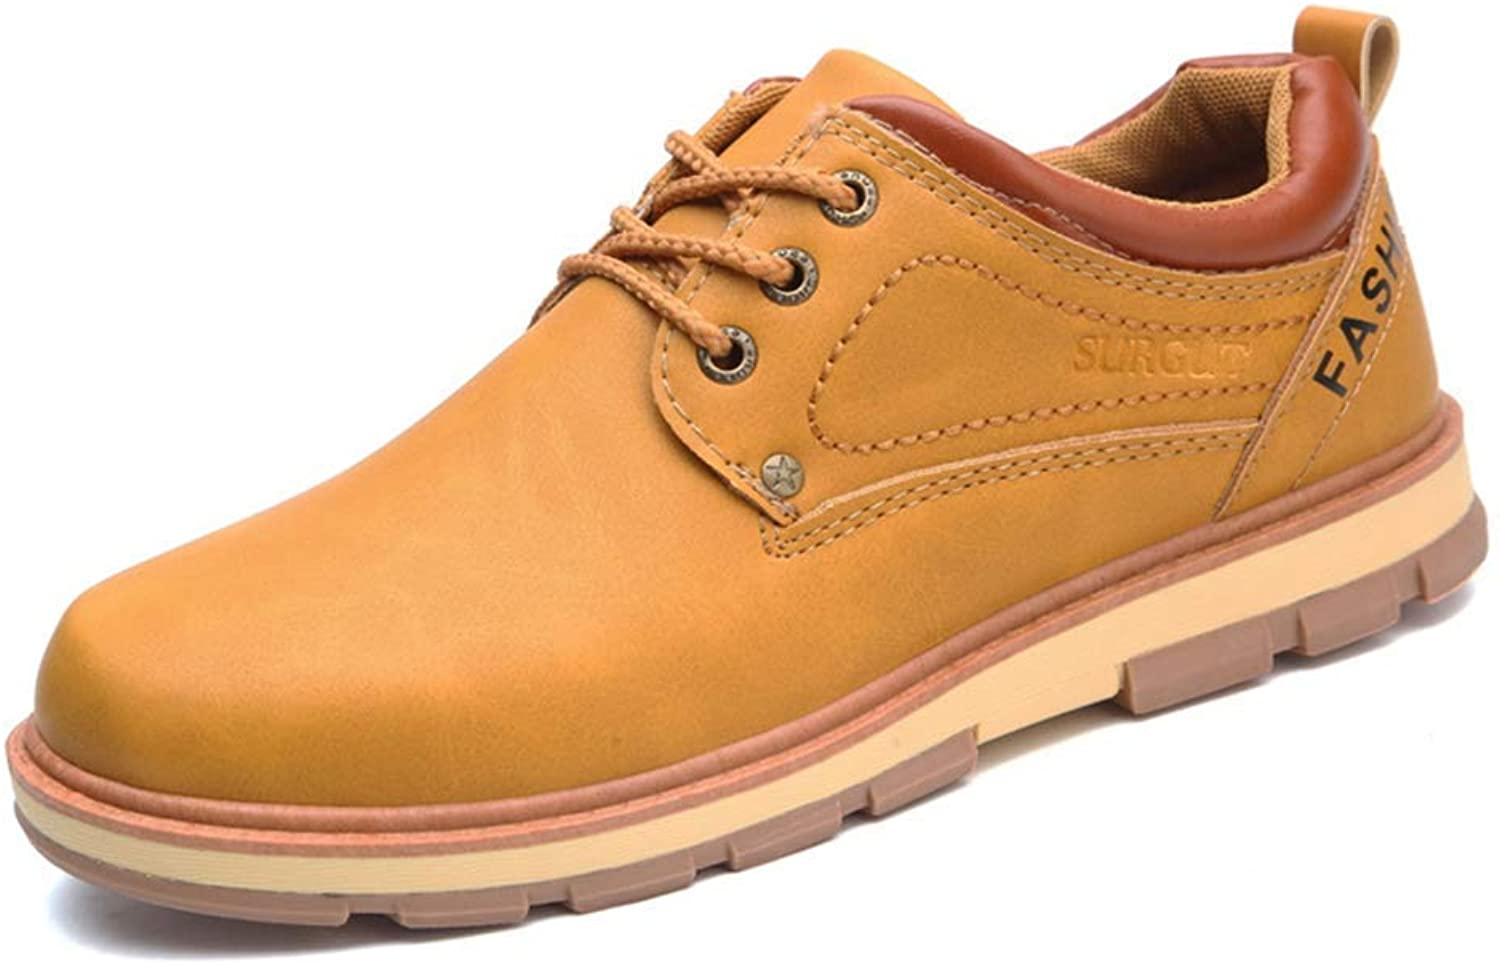 ZHRUI Men shoes Spring and Autumn Casual Fashion Safety Oxfords Breathable Flat Footwear pu Leather Waterproof shoes Men (color   Yellow, Size   9=43 EU)